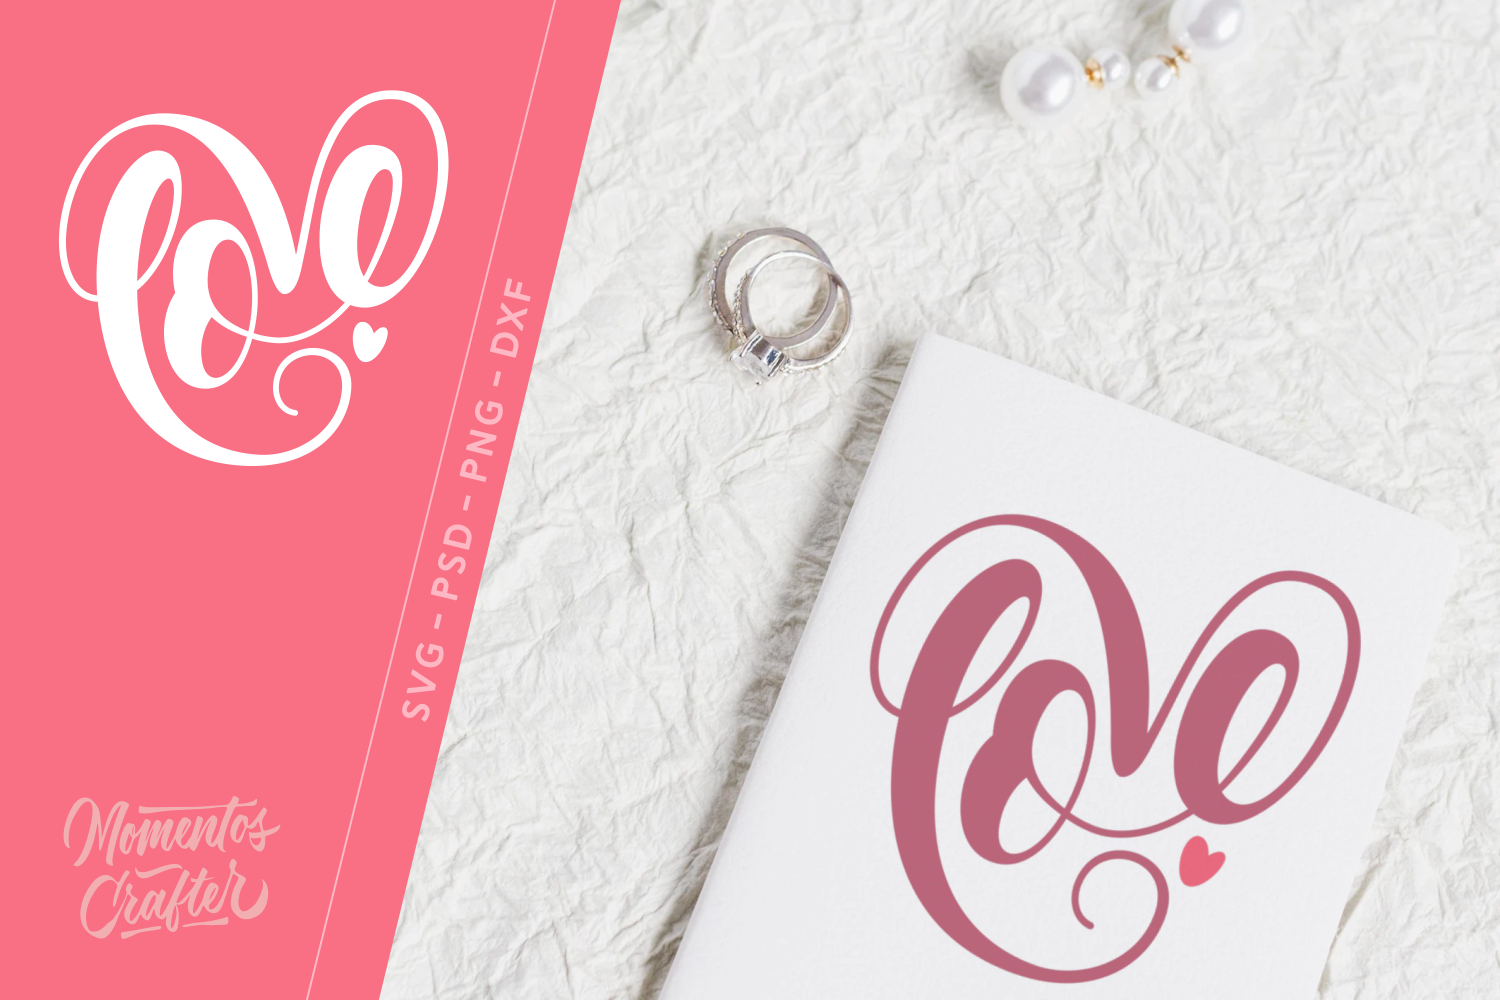 Download Free Love Graphic By Momentos Crafter Creative Fabrica for Cricut Explore, Silhouette and other cutting machines.